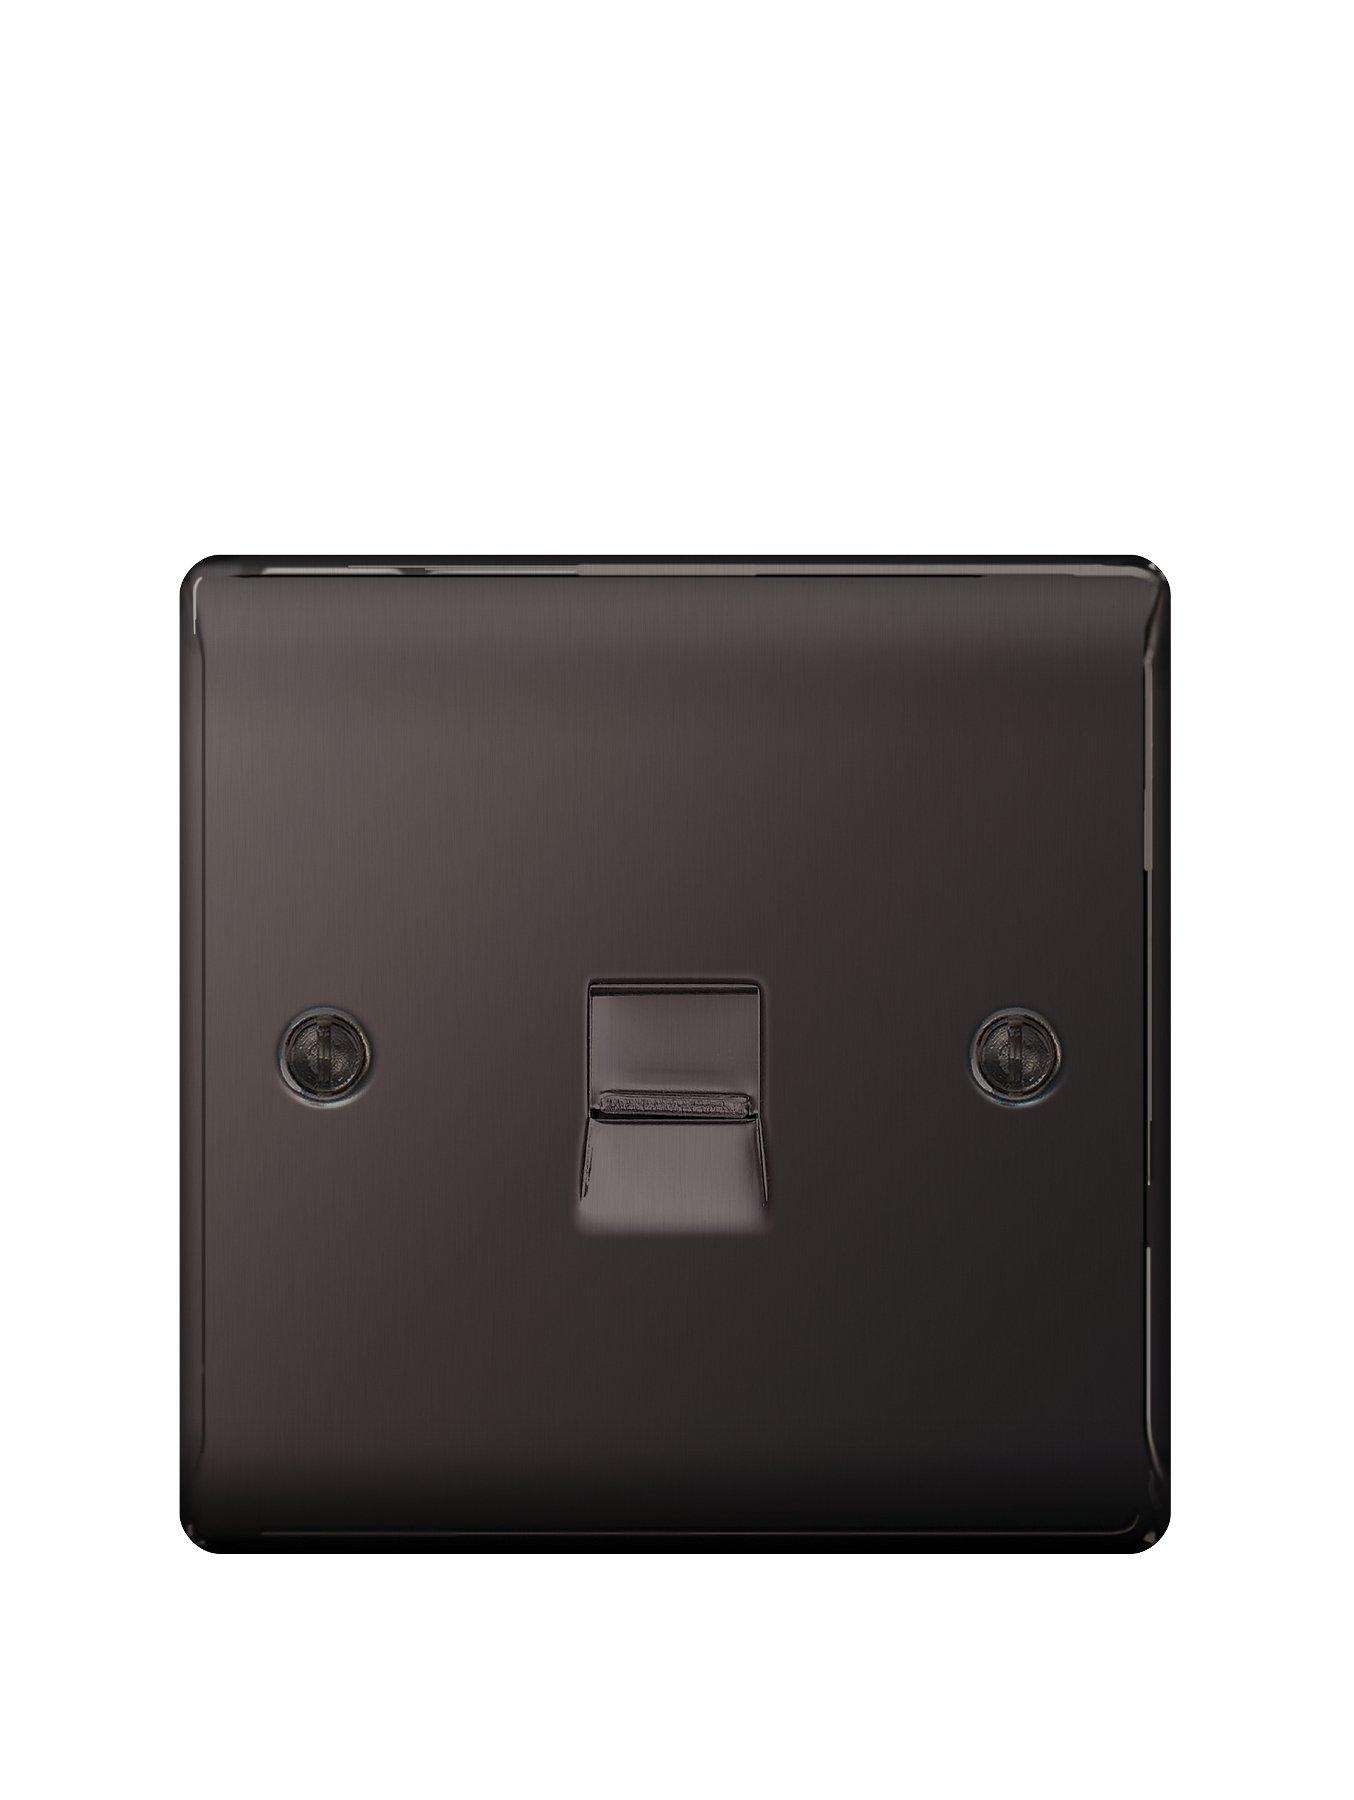 Compare prices for British General Electrical Raised Telephone Socket Point - Black Nickel